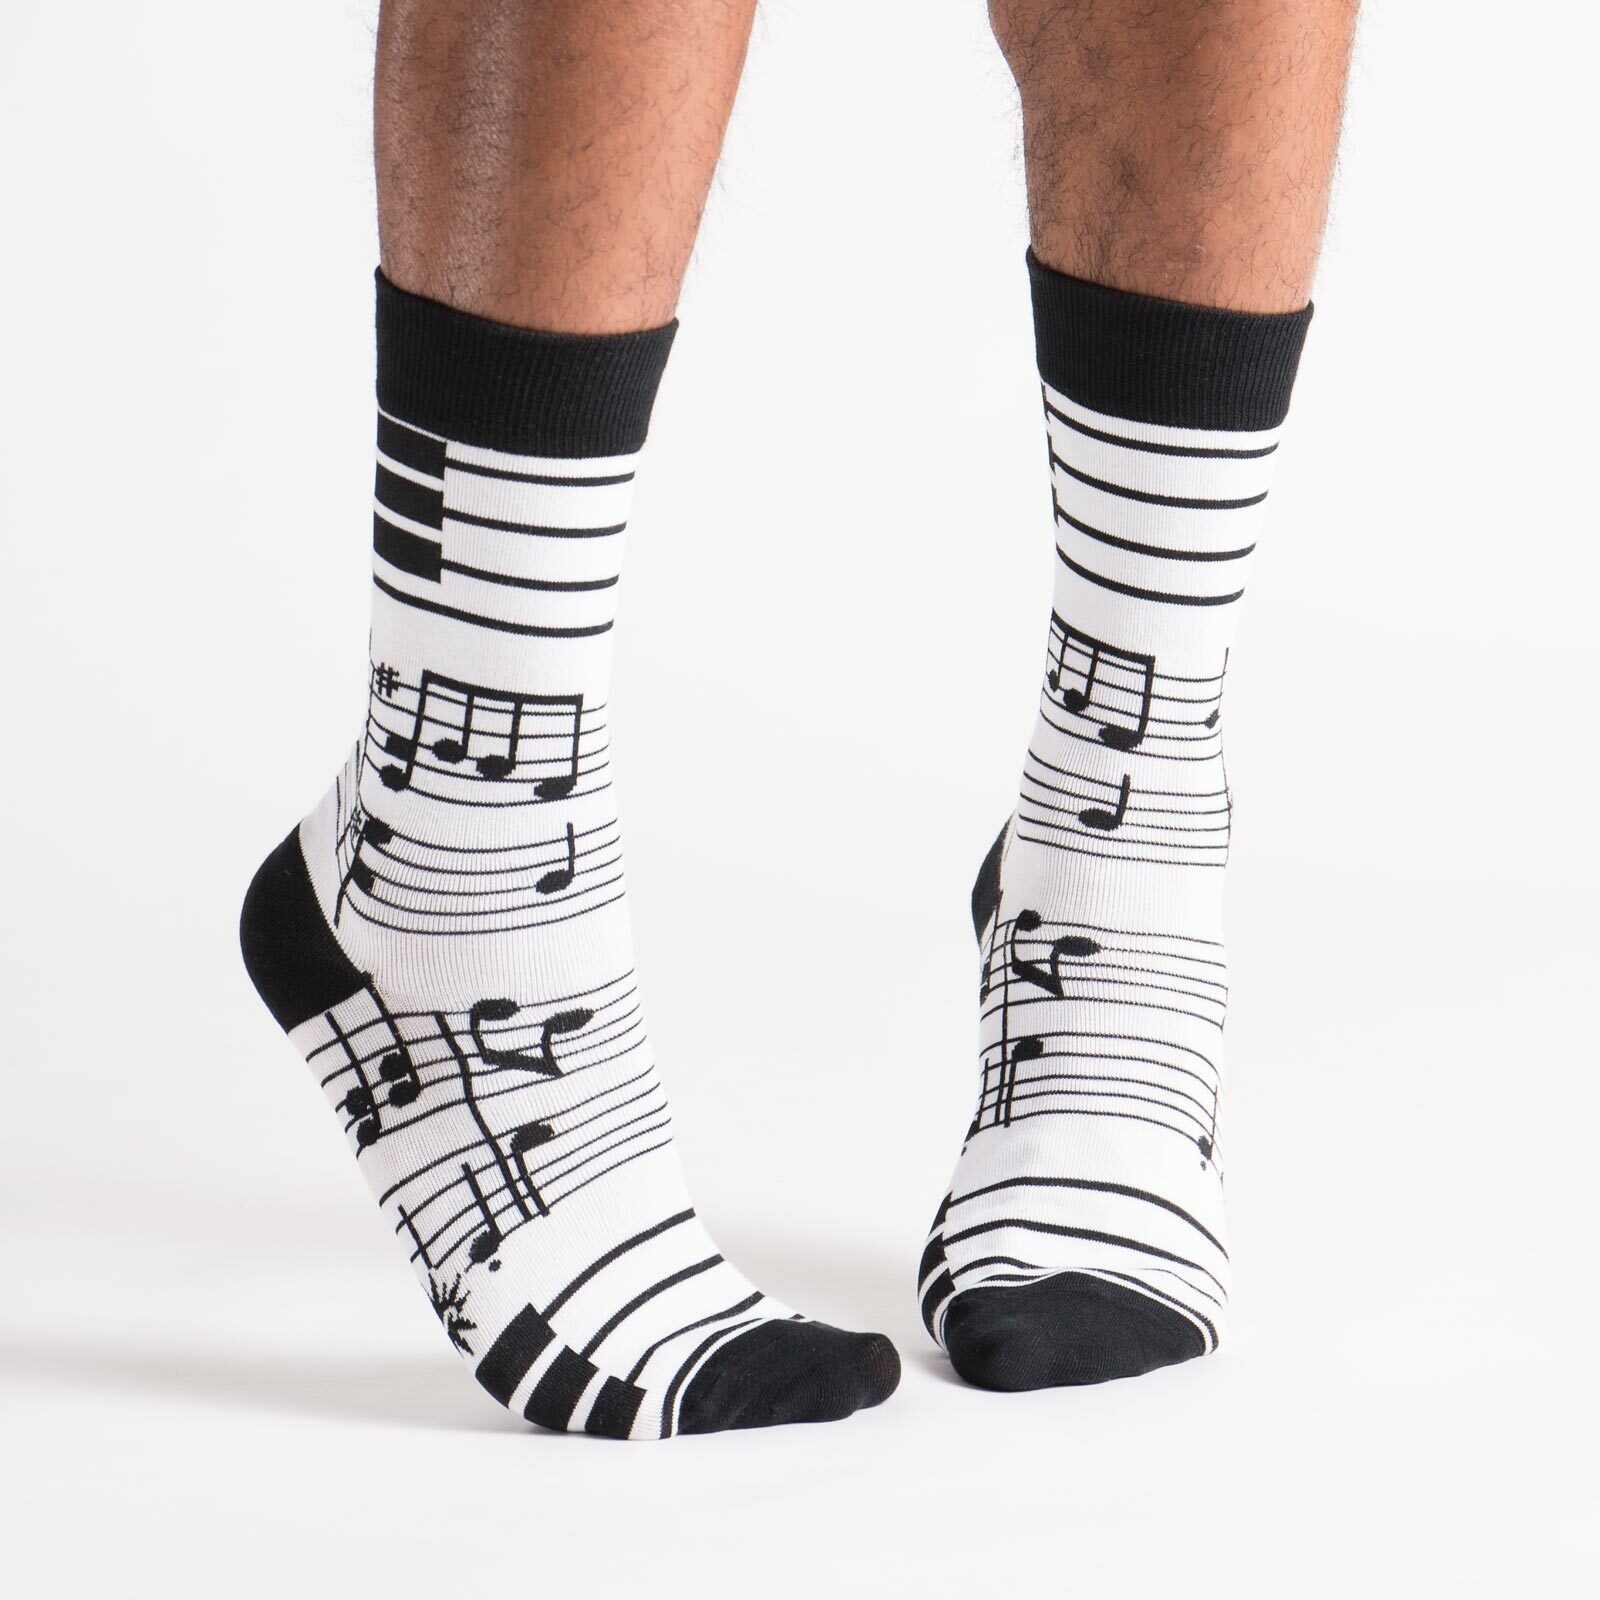 model wearing Footnotes - Music Crew High Socks Black and White - Men's